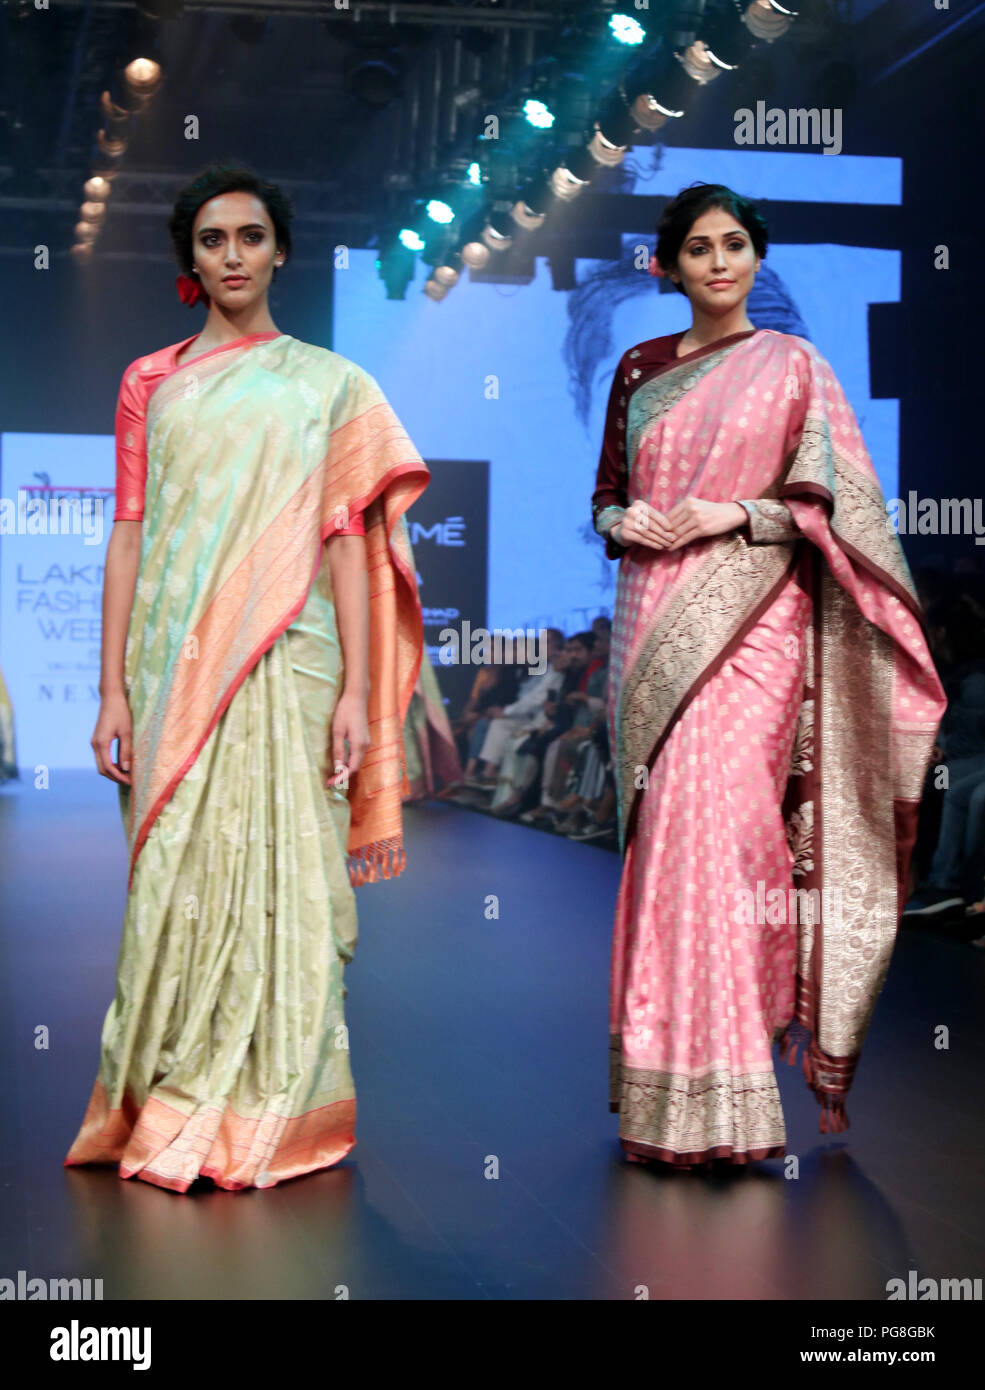 Mumbai India 24th Aug 2018 Models Seen Showcasing Designs 3rd Day Of The Lakme Fashion Week Winter Festive 2018 By Gaurang At Hotel St Regis In Mumbai Credit Azhar Khan Sopa Images Zuma Wire Alamy Live News